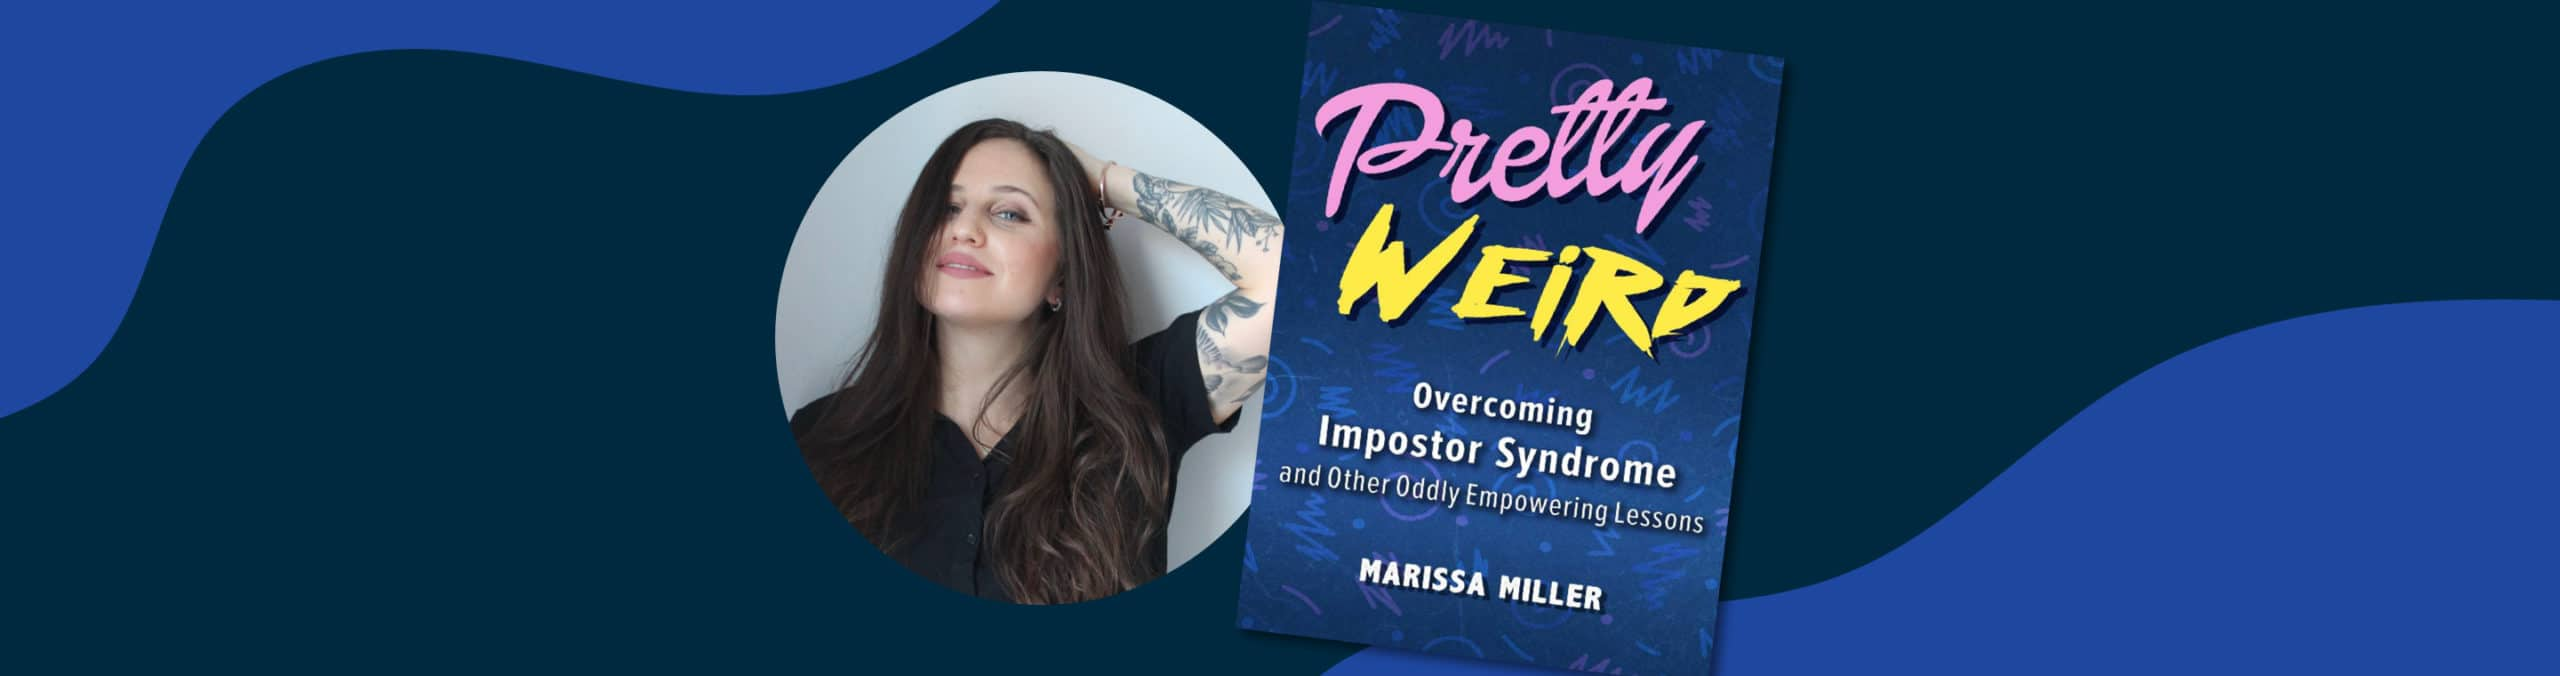 Marissa Miller on Imposter Syndrome and Embracing Your Weirdness